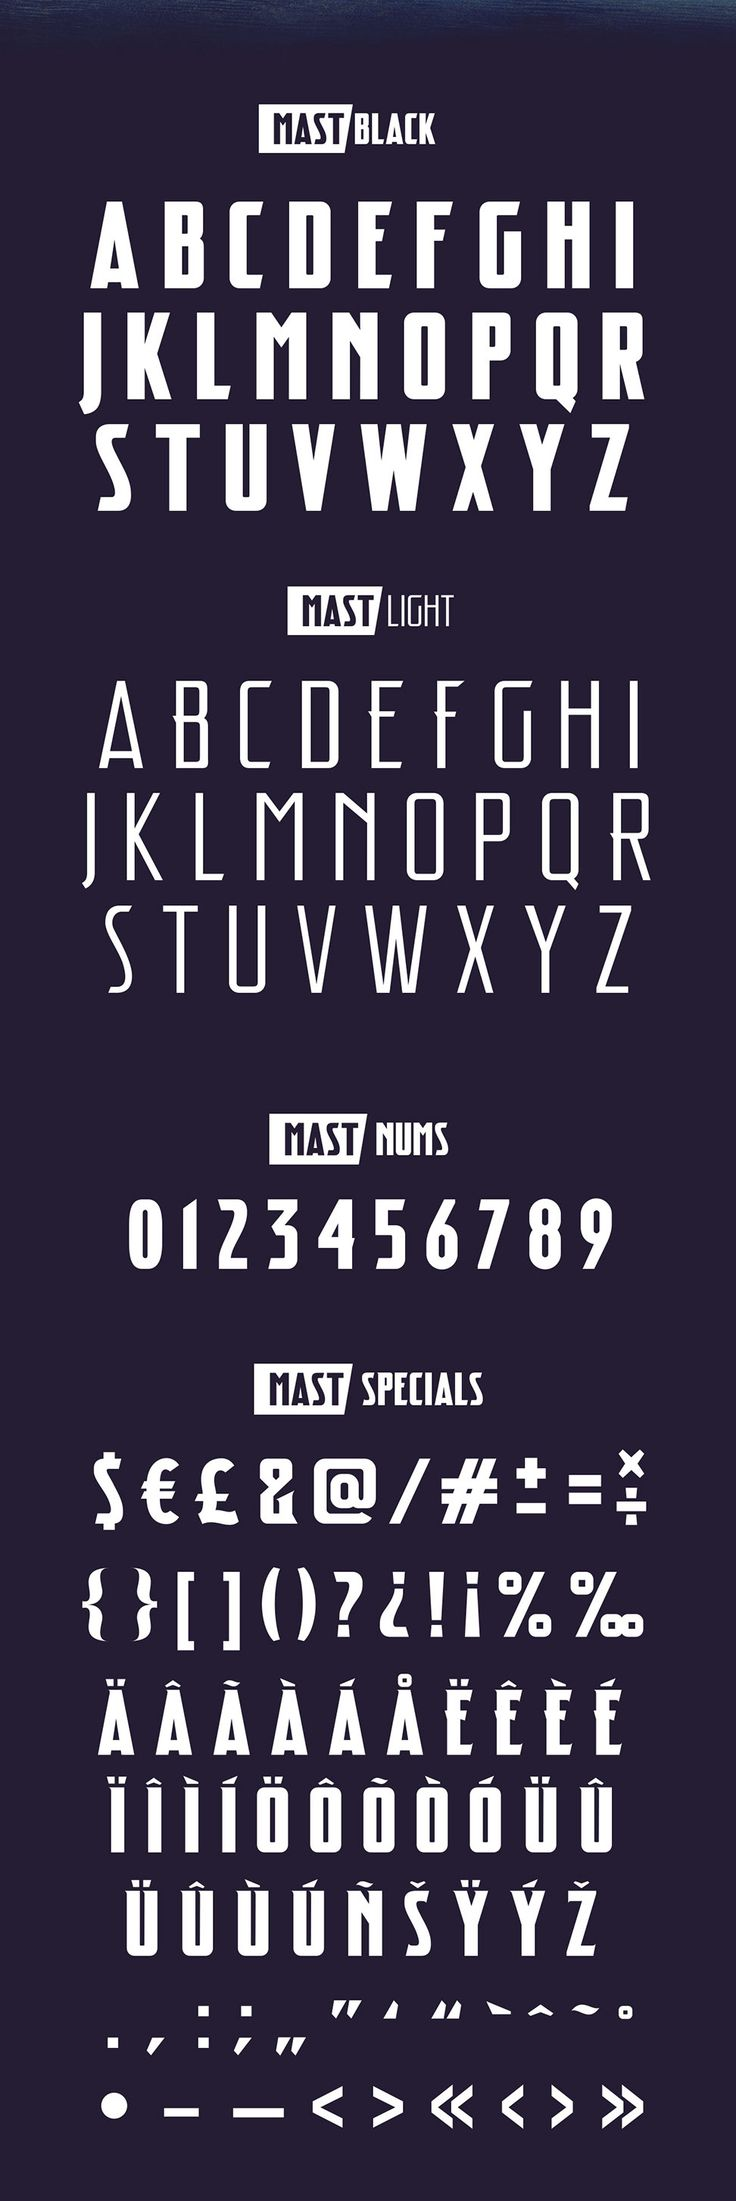 Mast Free Font Letters